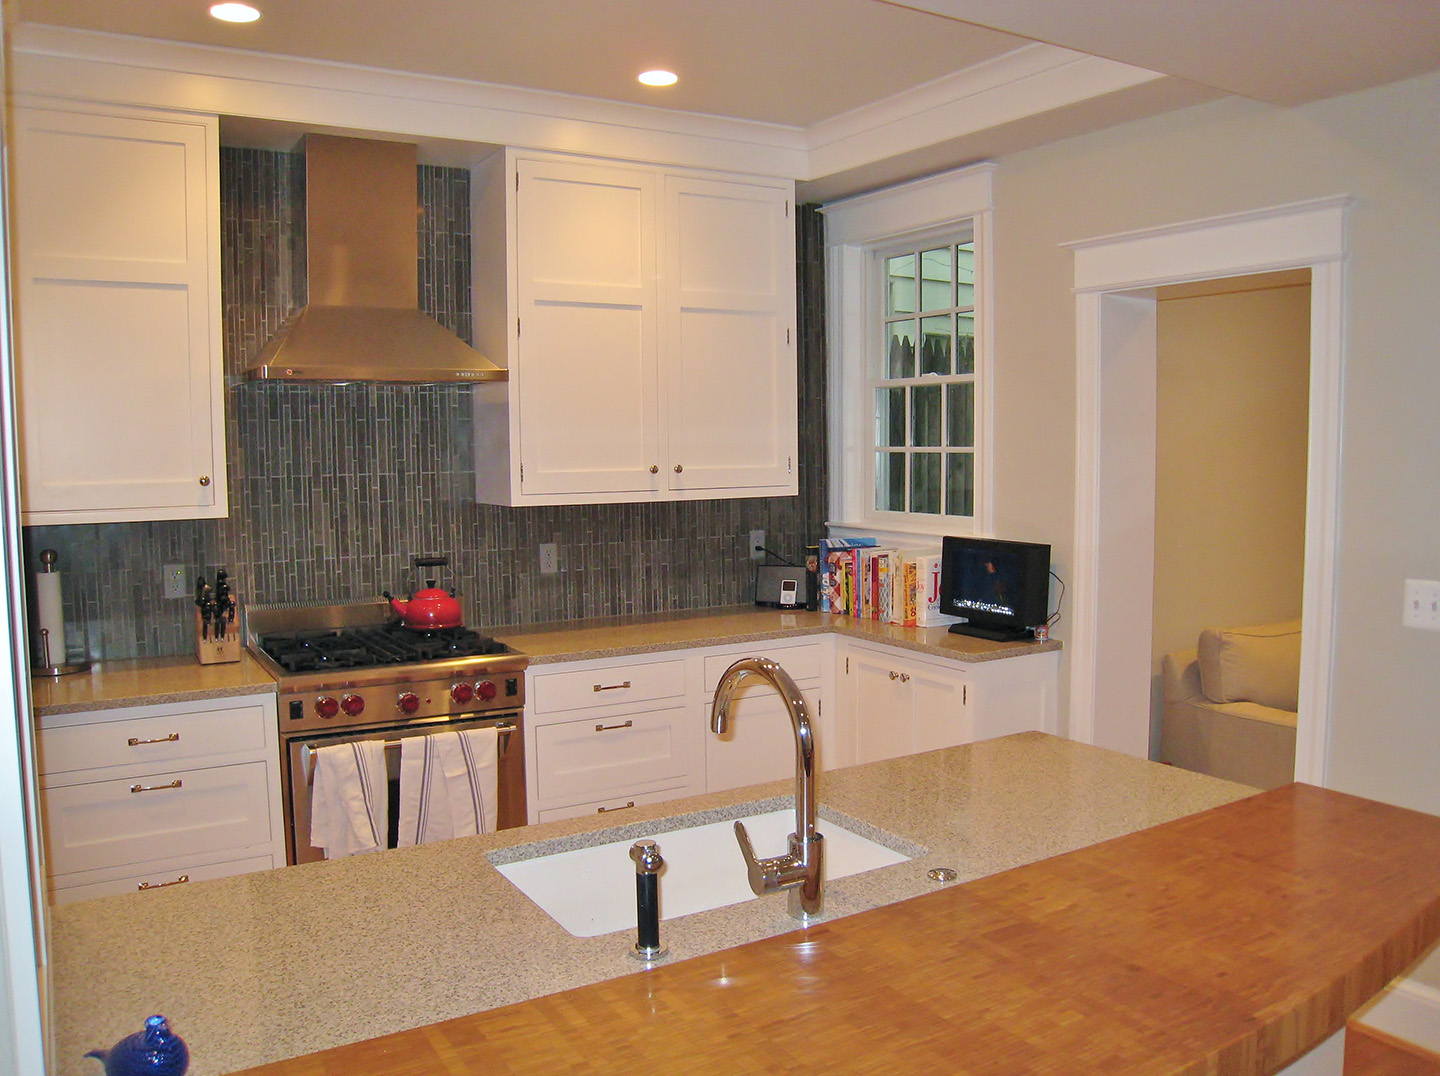 integrated kitchens kitchen transitional slate backsplash the kitchen now reflects the warm and inviting qualities of the homeowners added bonus the more abundant amount of counter space was all designed